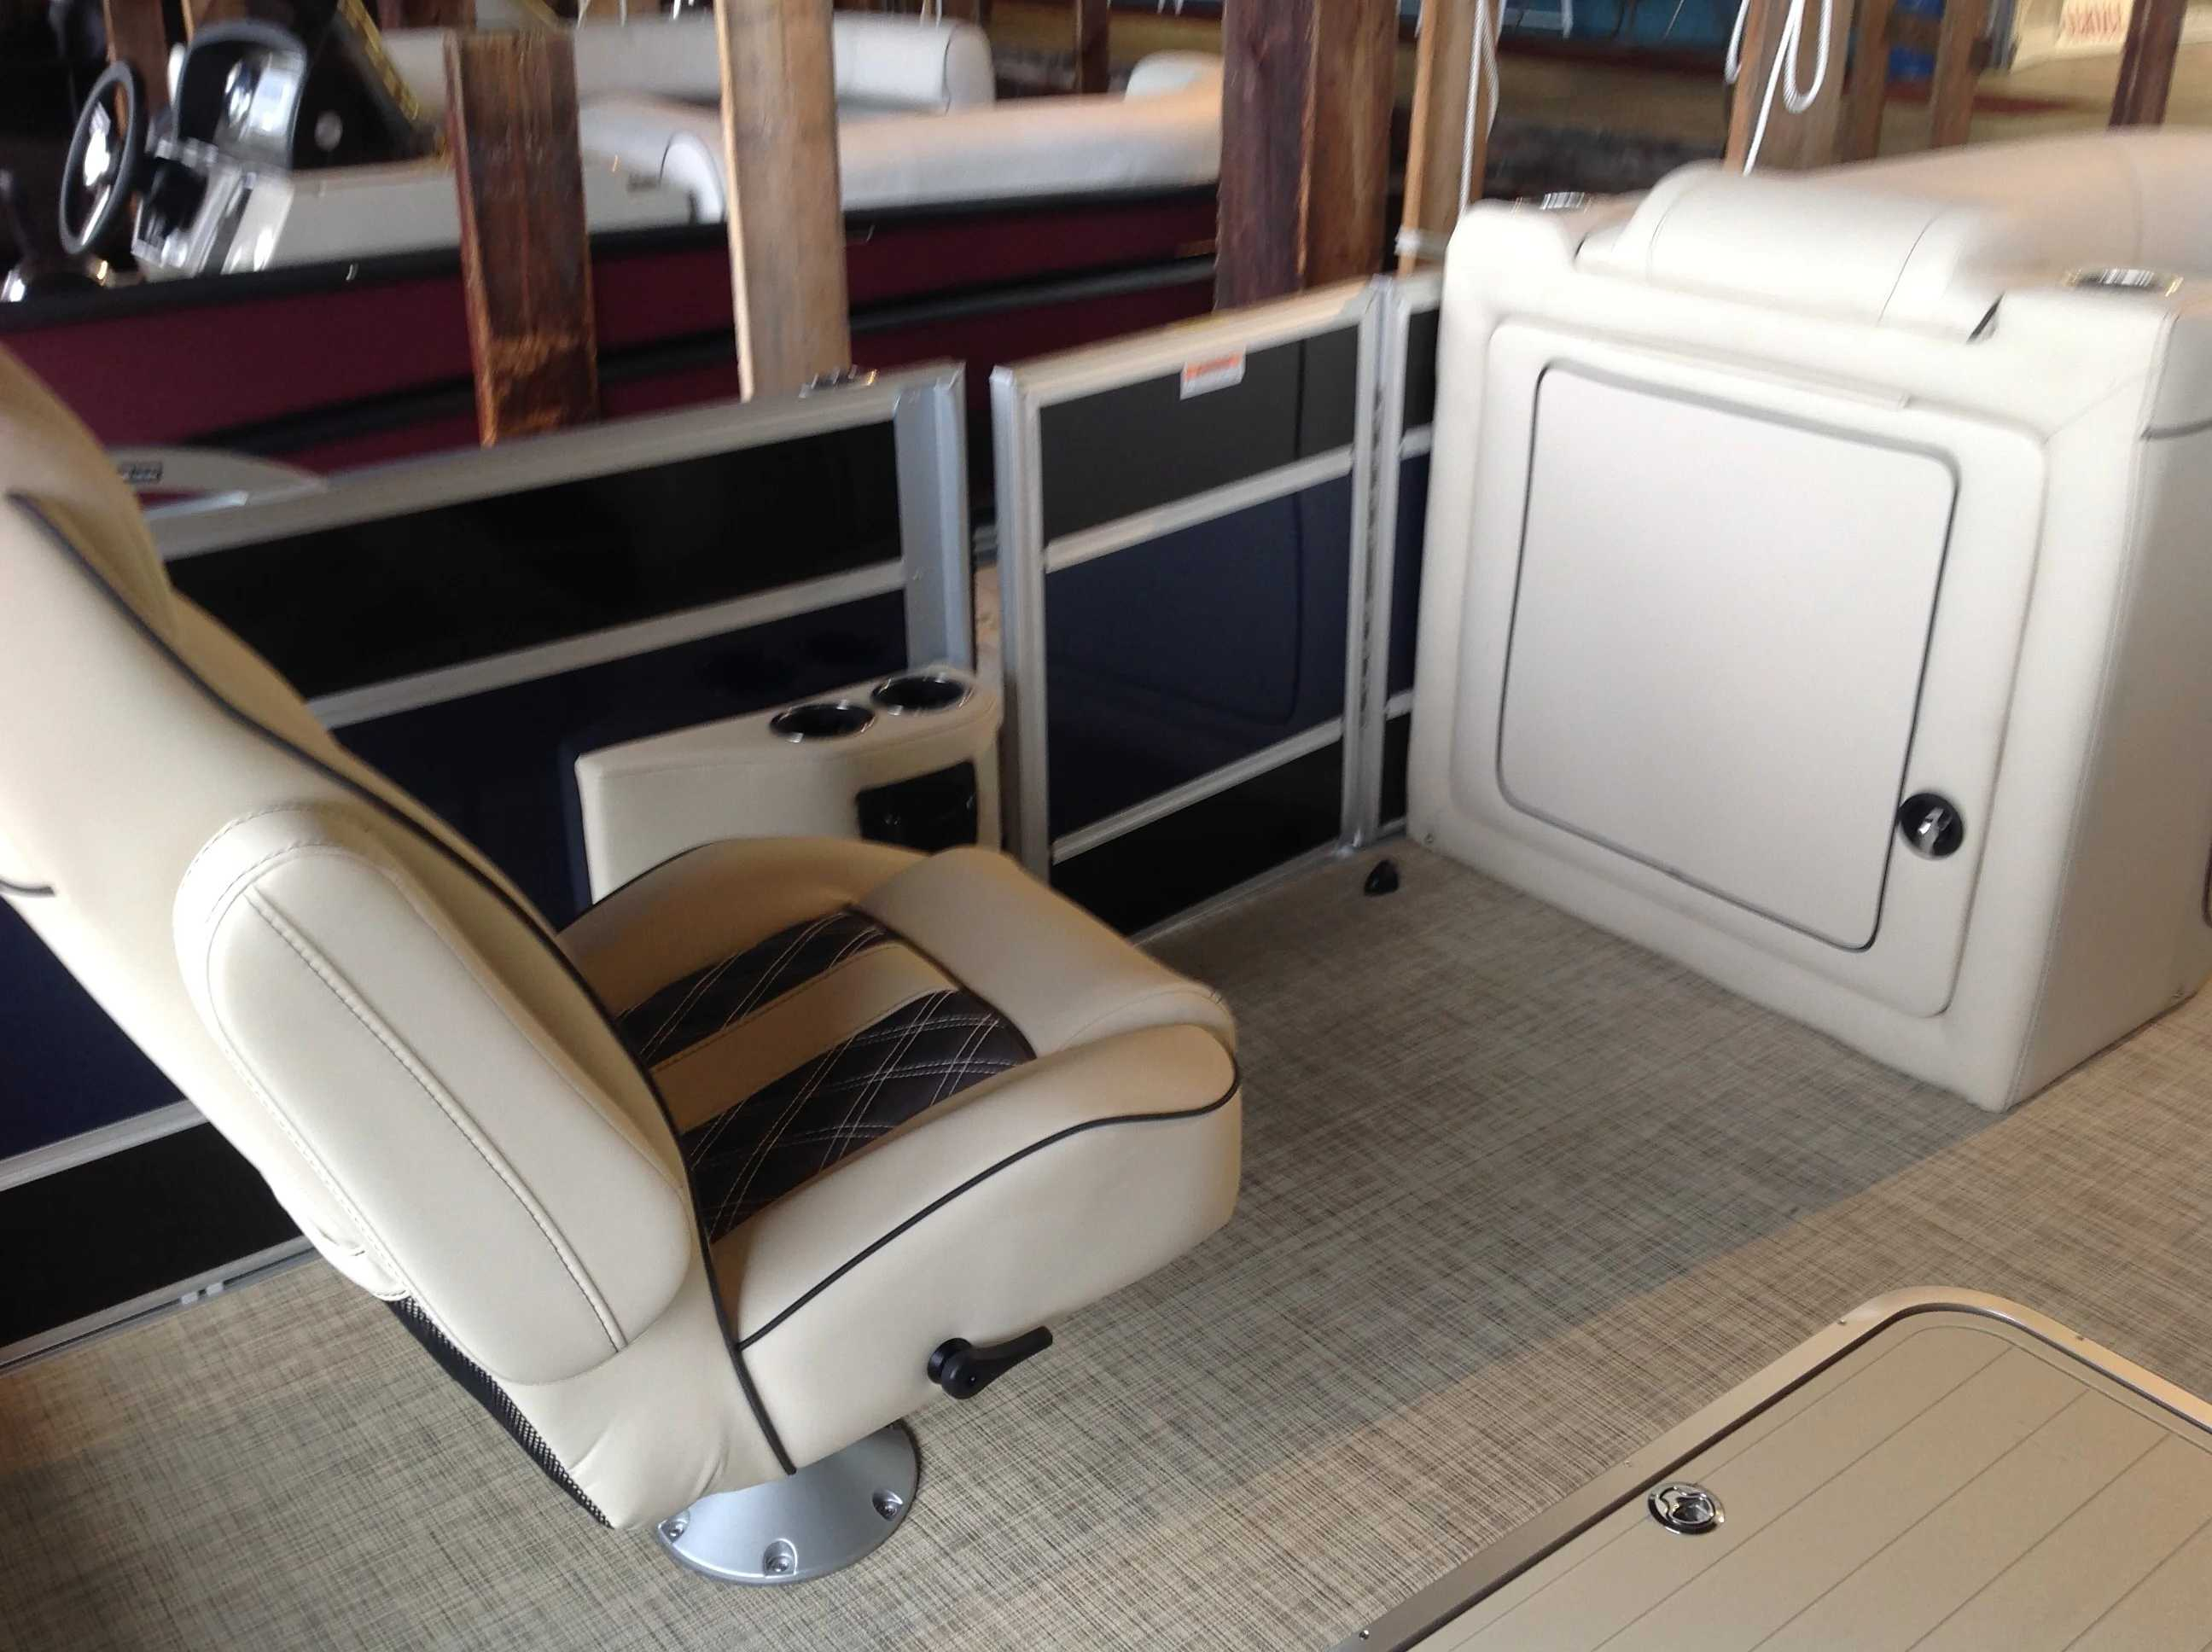 2021 Barletta boat for sale, model of the boat is L23UC & Image # 8 of 12